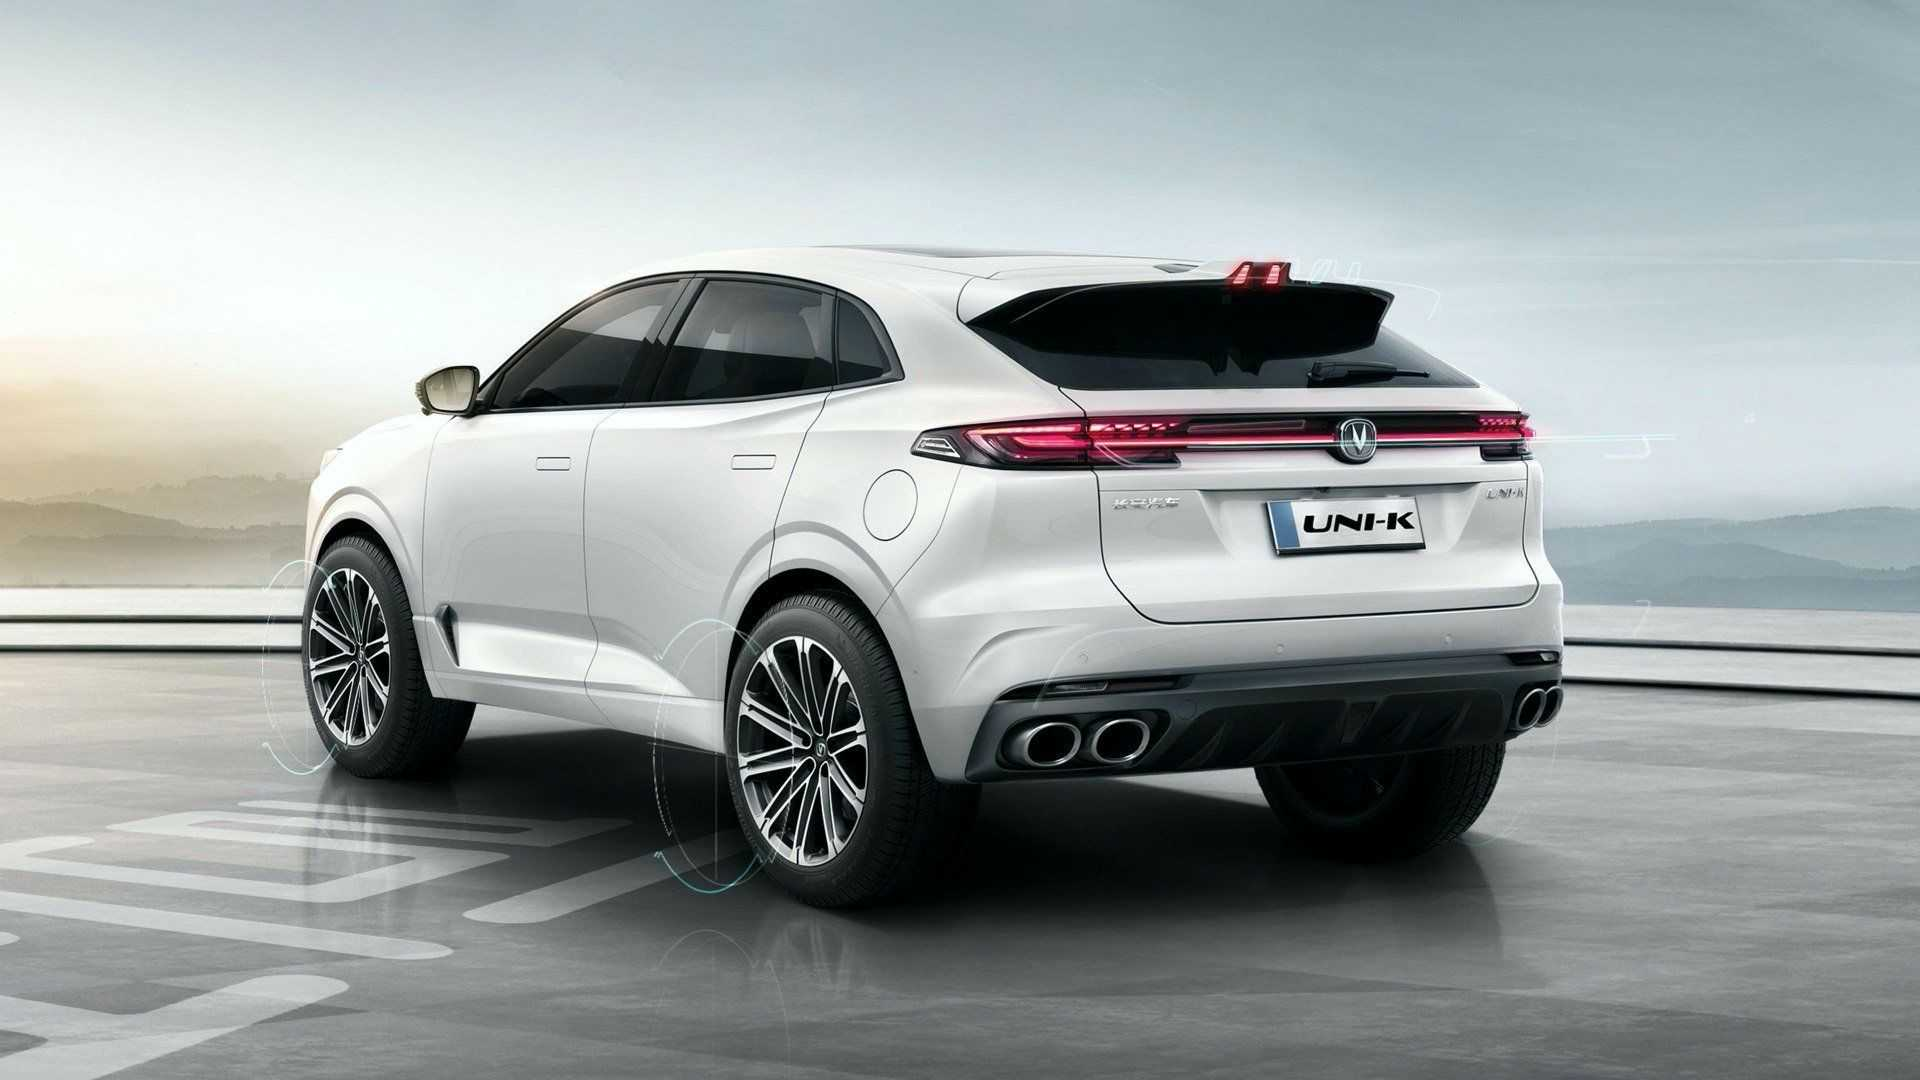 Changan Uni-K Is A Stylish Swoopy SUV With A Familiar Look